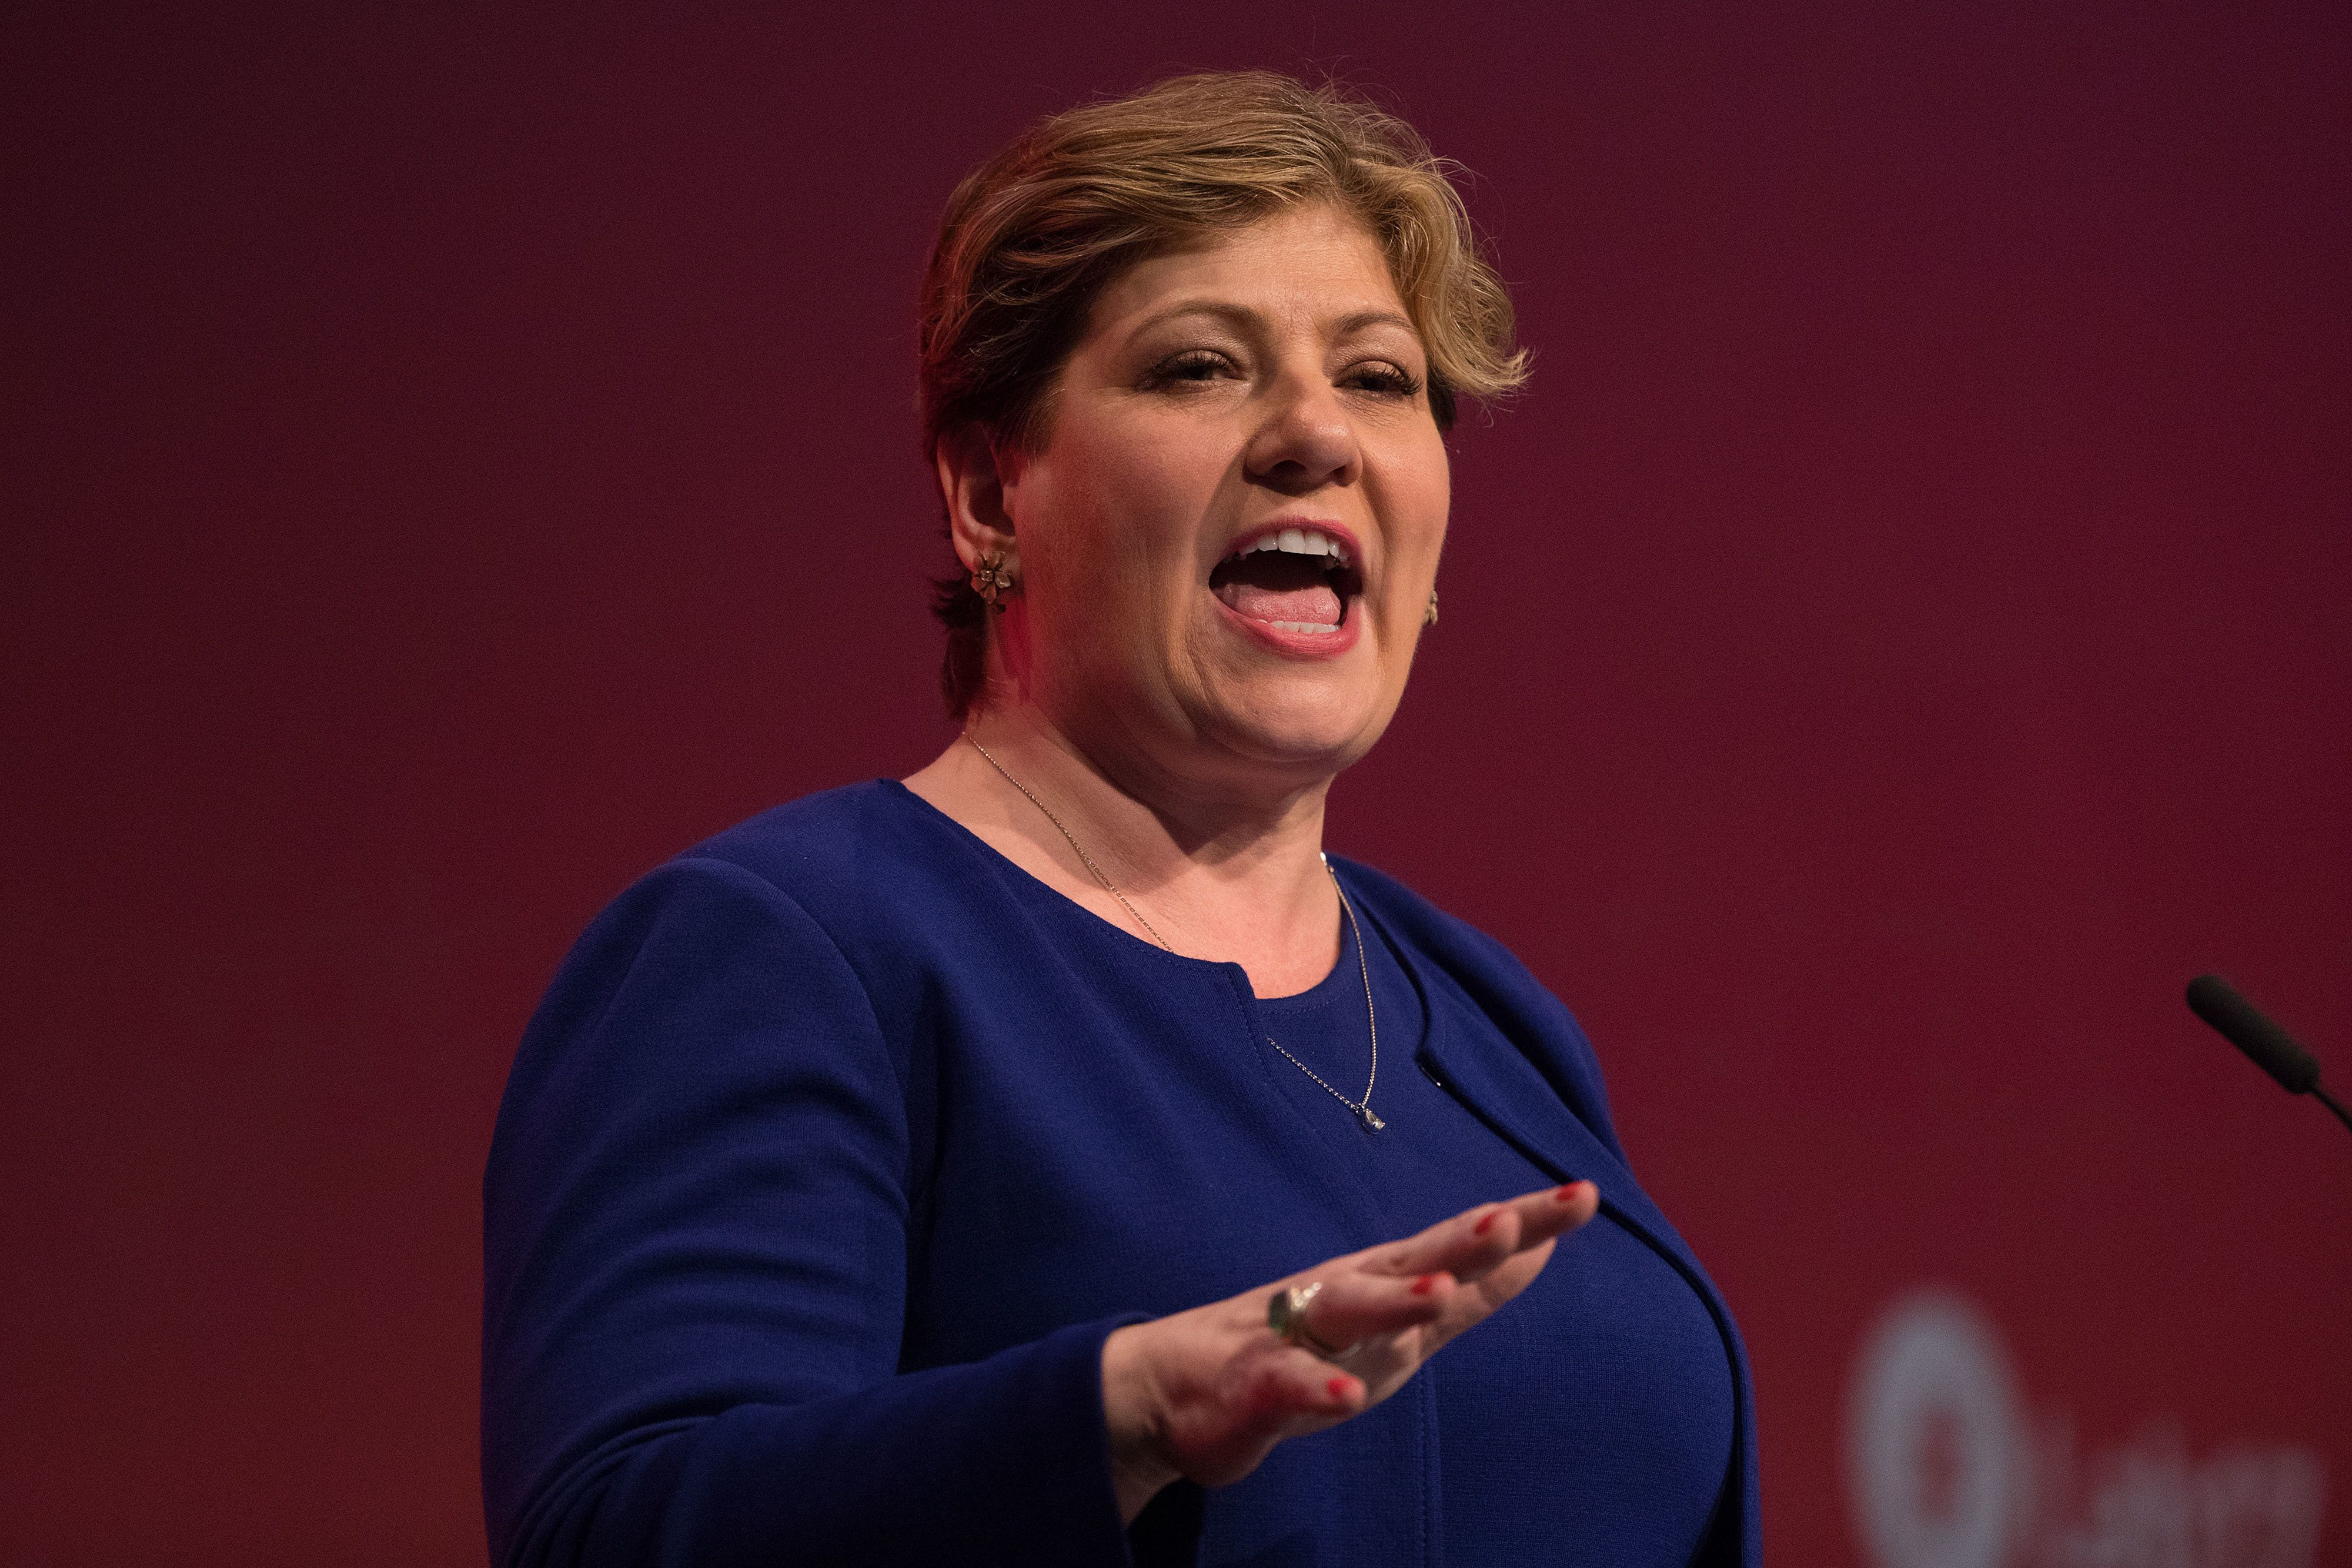 Emily Thornberry Says UK Is Heading For No Brexit Deal Because Theresa May Is Too